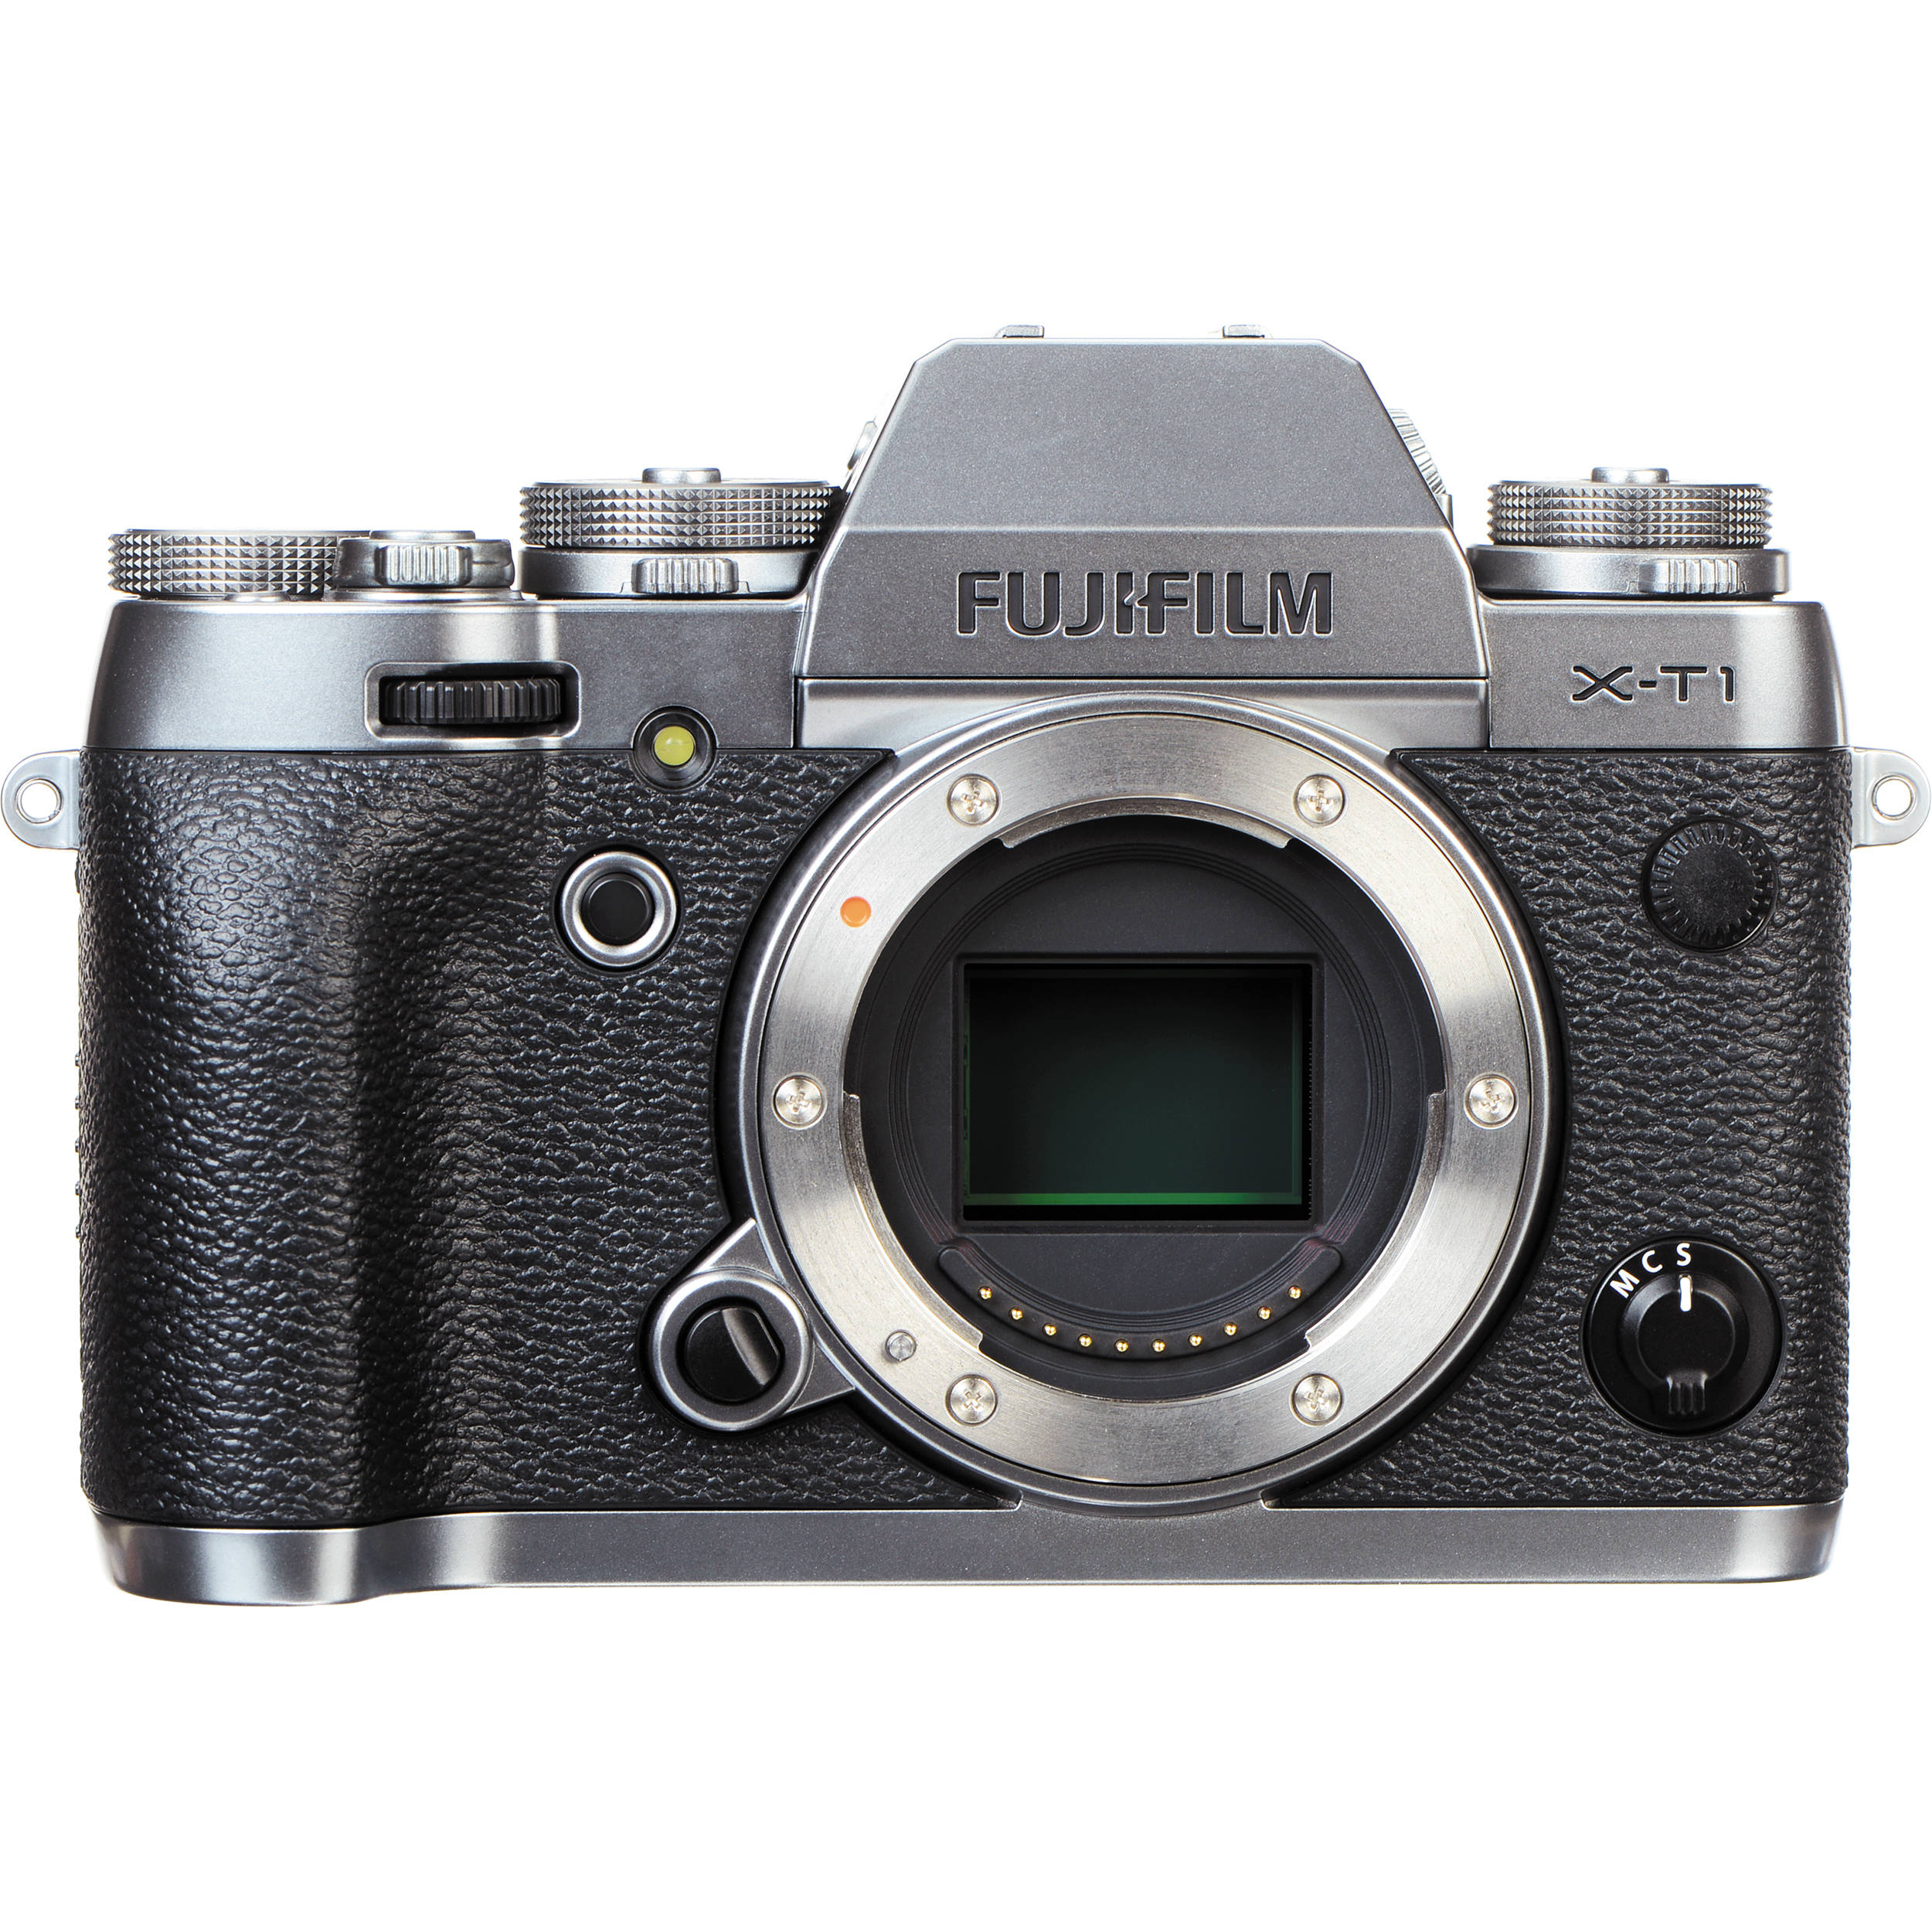 Fujifilm X-T1 Mirrorless Digital Camera 16442755 B&H Photo Video